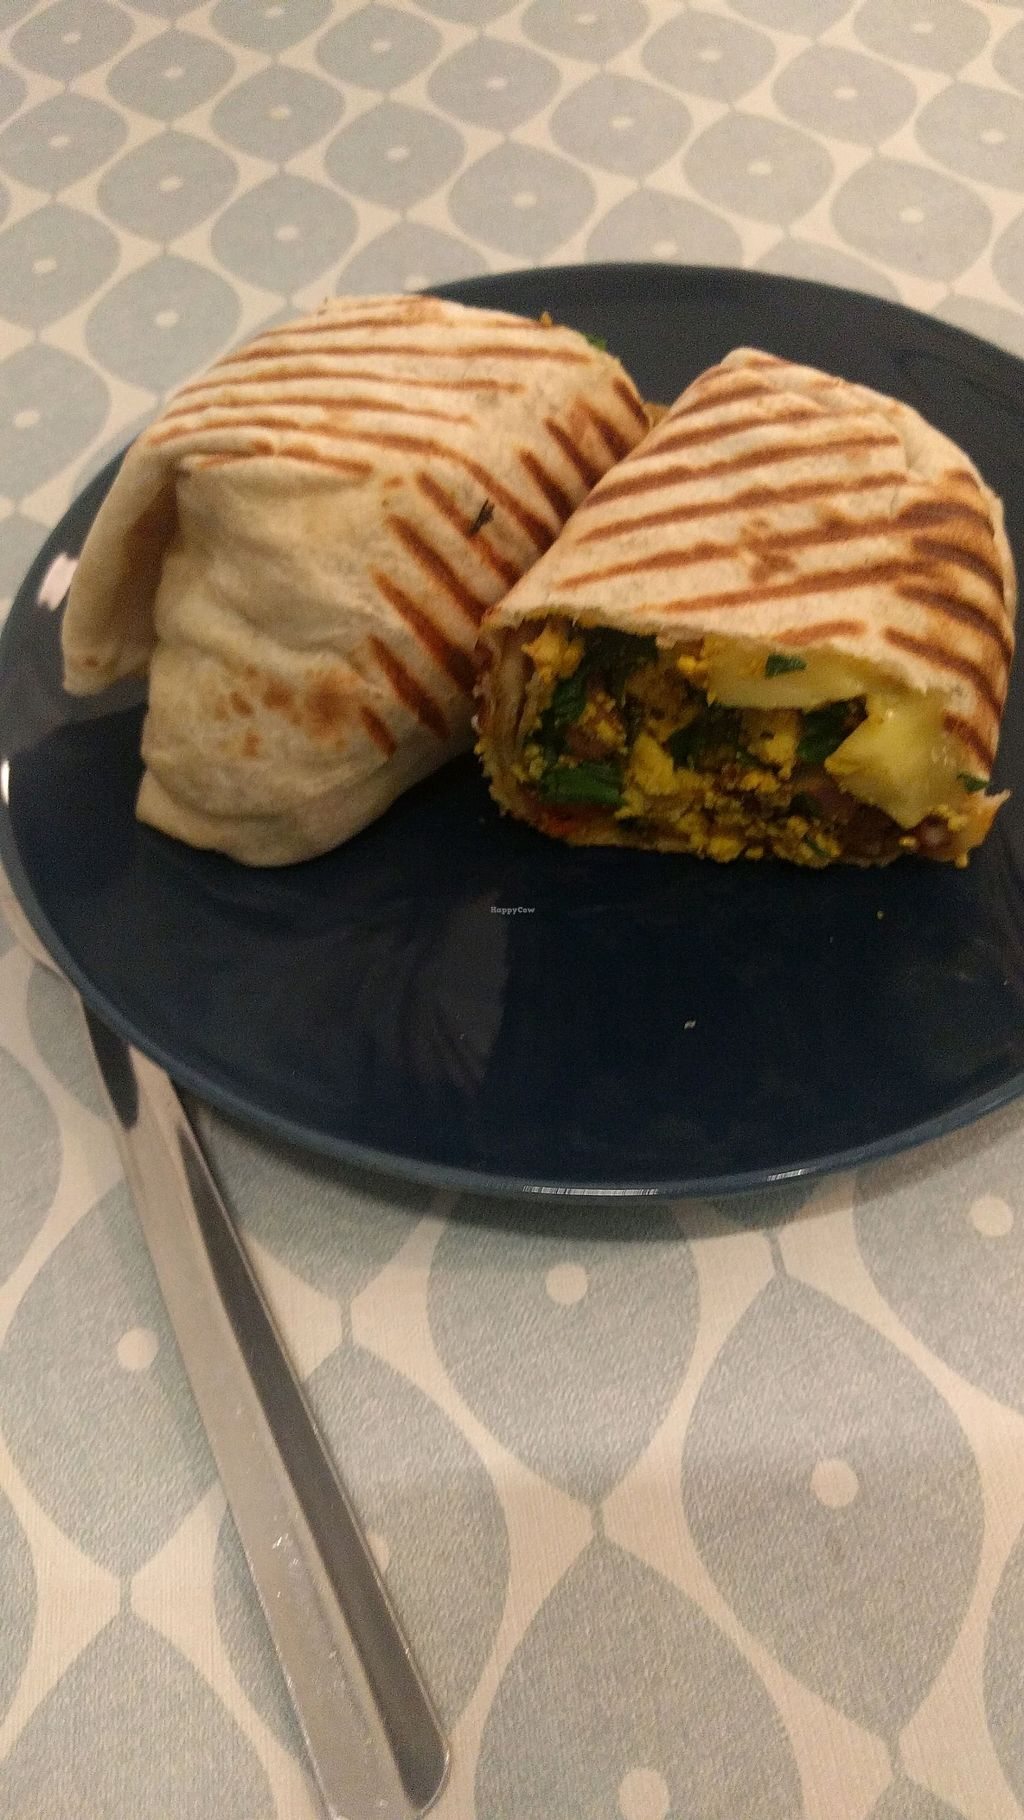 """Photo of The Good Food Store  by <a href=""""/members/profile/IngeWijers"""">IngeWijers</a> <br/>burrito breakfast <br/> January 5, 2018  - <a href='/contact/abuse/image/102652/343150'>Report</a>"""